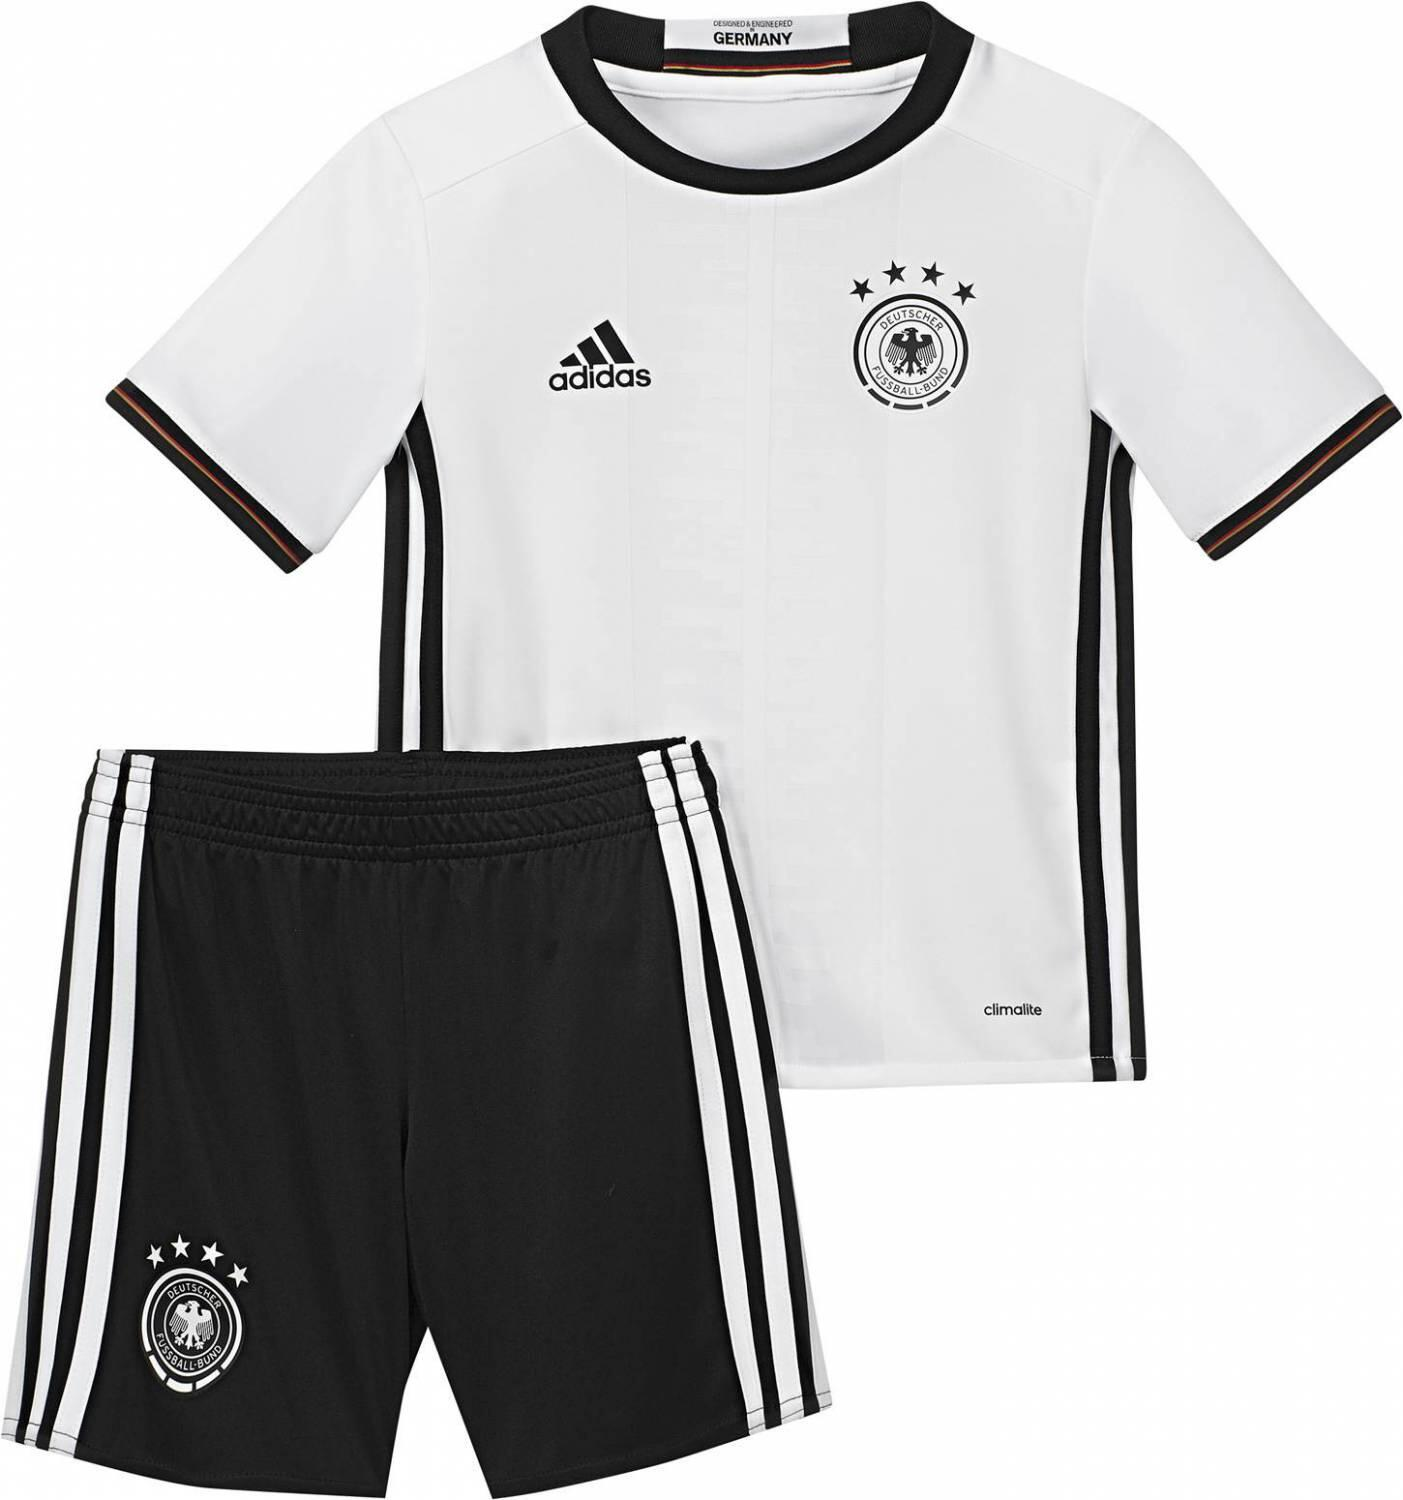 Miniboyssportmode - adidas DFB Home Mini Kit Set EM 2016 (Größe 116, white black) - Onlineshop Sportolino